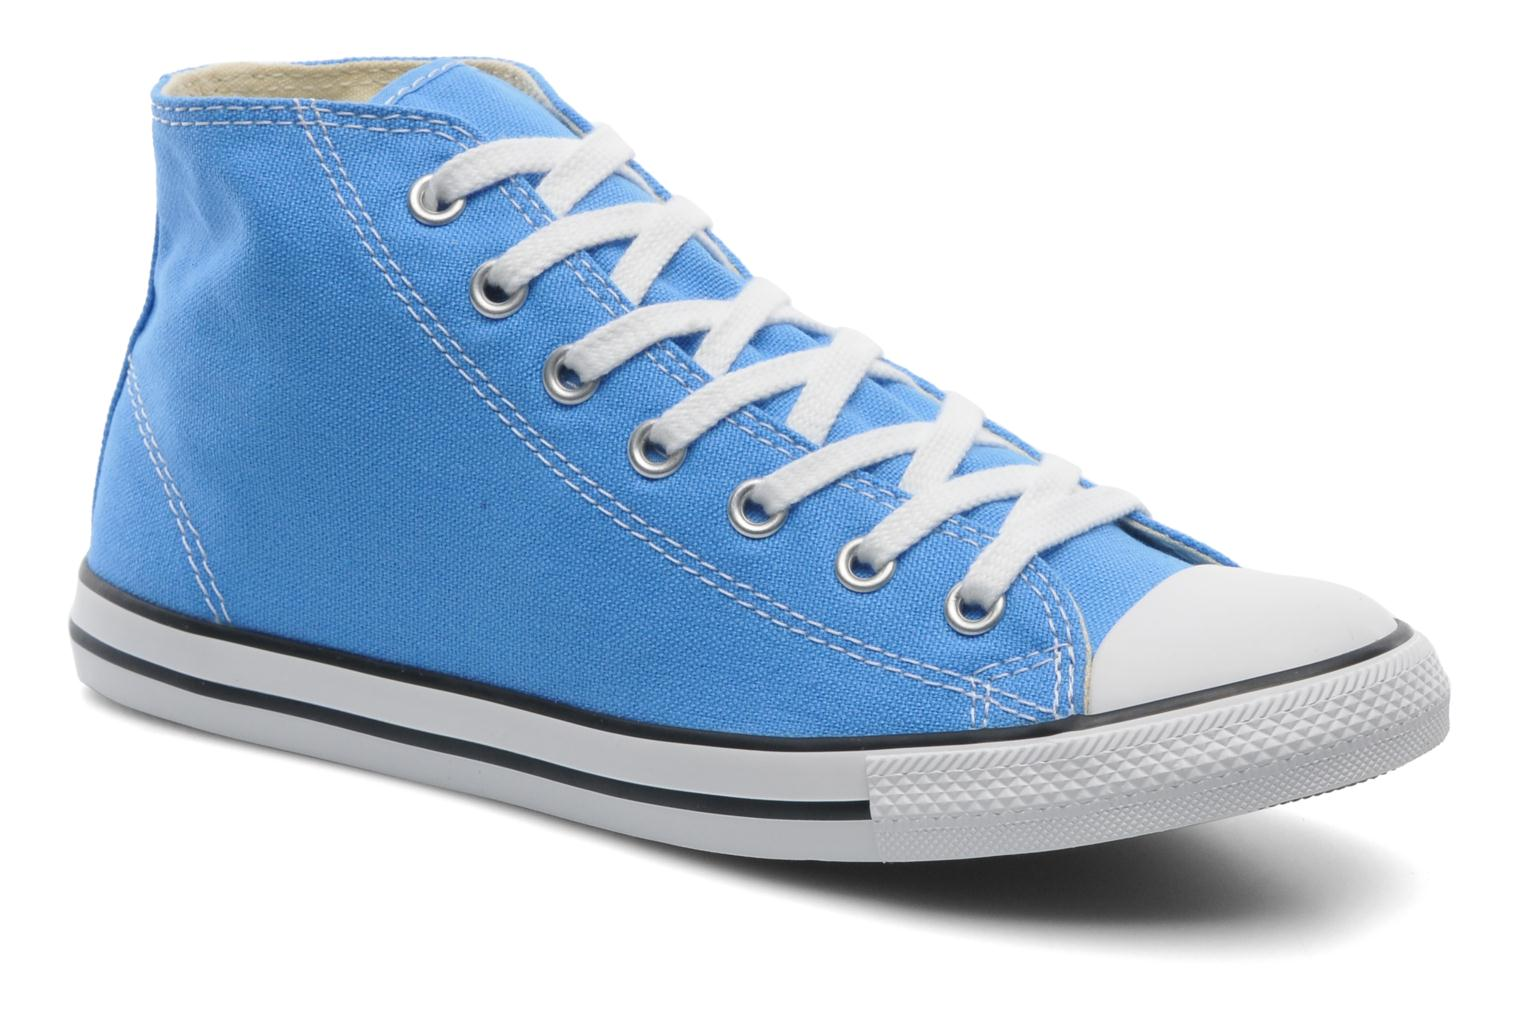 All Star Dainty Canvas Mid W Bleu ciel